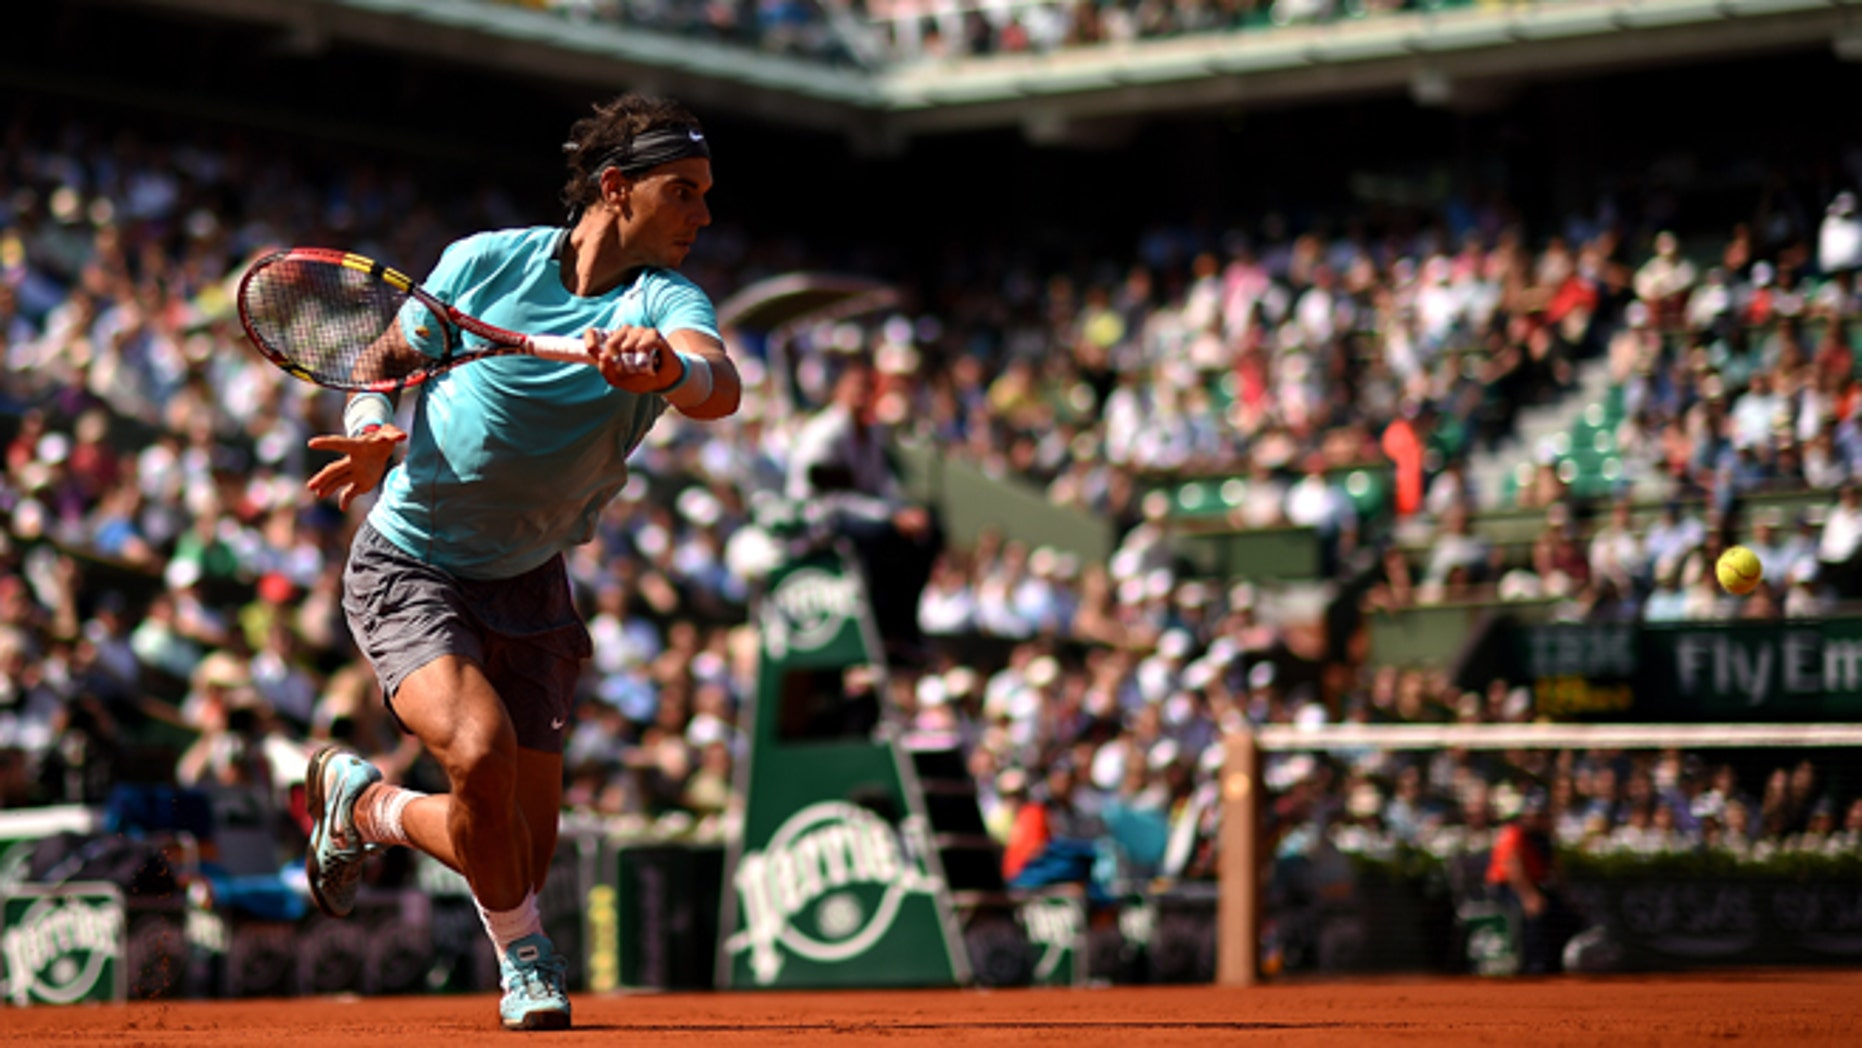 PARIS, FRANCE - MAY 31:  Rafael Nadal of Spain returns a shot during his men's singles match against Leonardo Mayer of Argentina on day seven of the French Open at Roland Garros on May 31, 2014 in Paris, France.  (Photo by Matthias Hangst/Getty Images)